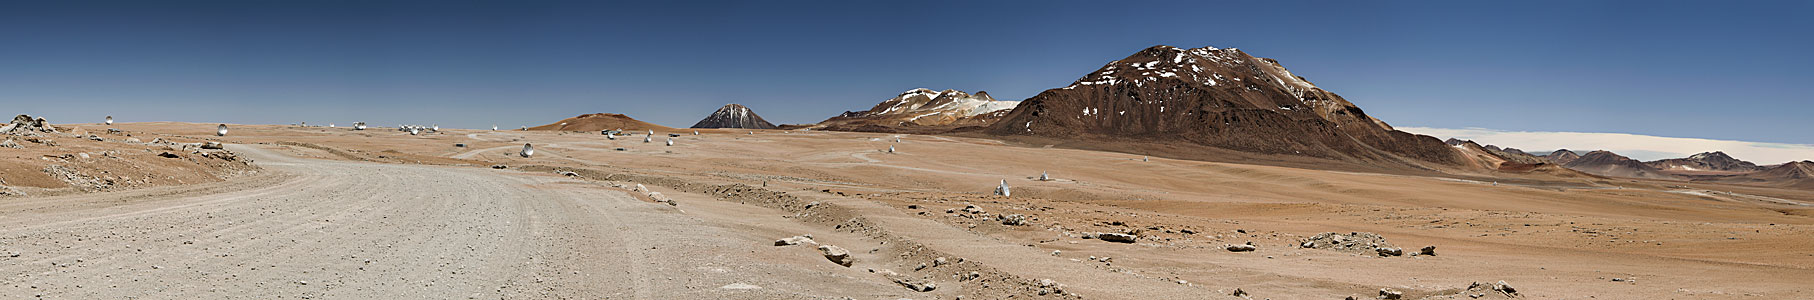 ALMA's antennas spread across the Chajnantor Plateau